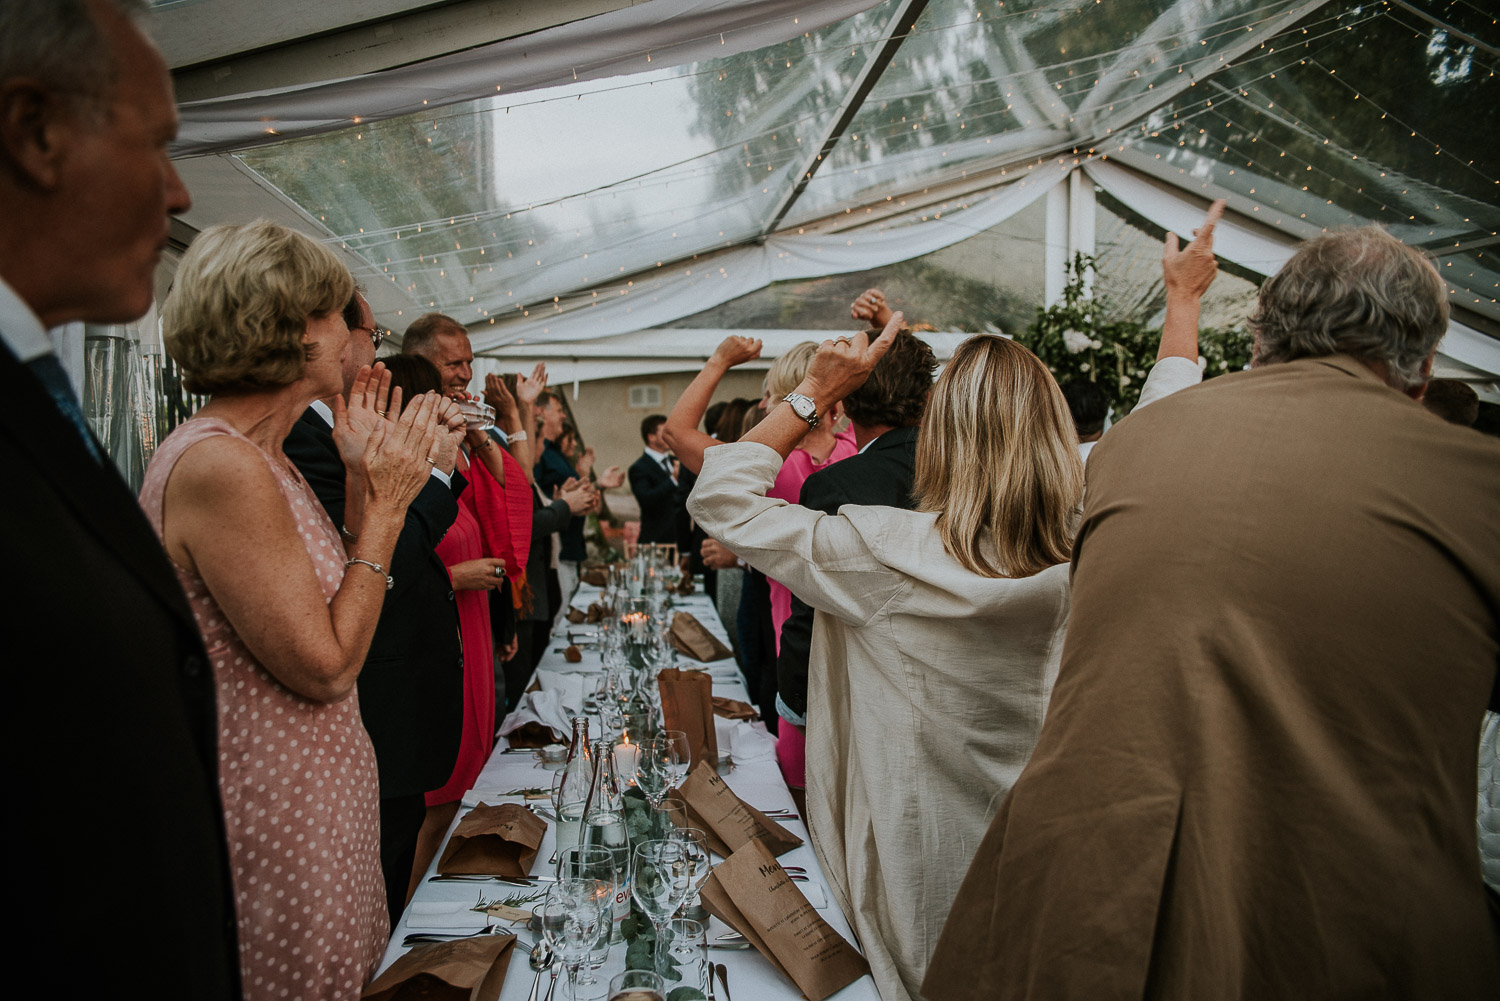 bergerac_wedding_katy_webb_photography_france_UK150